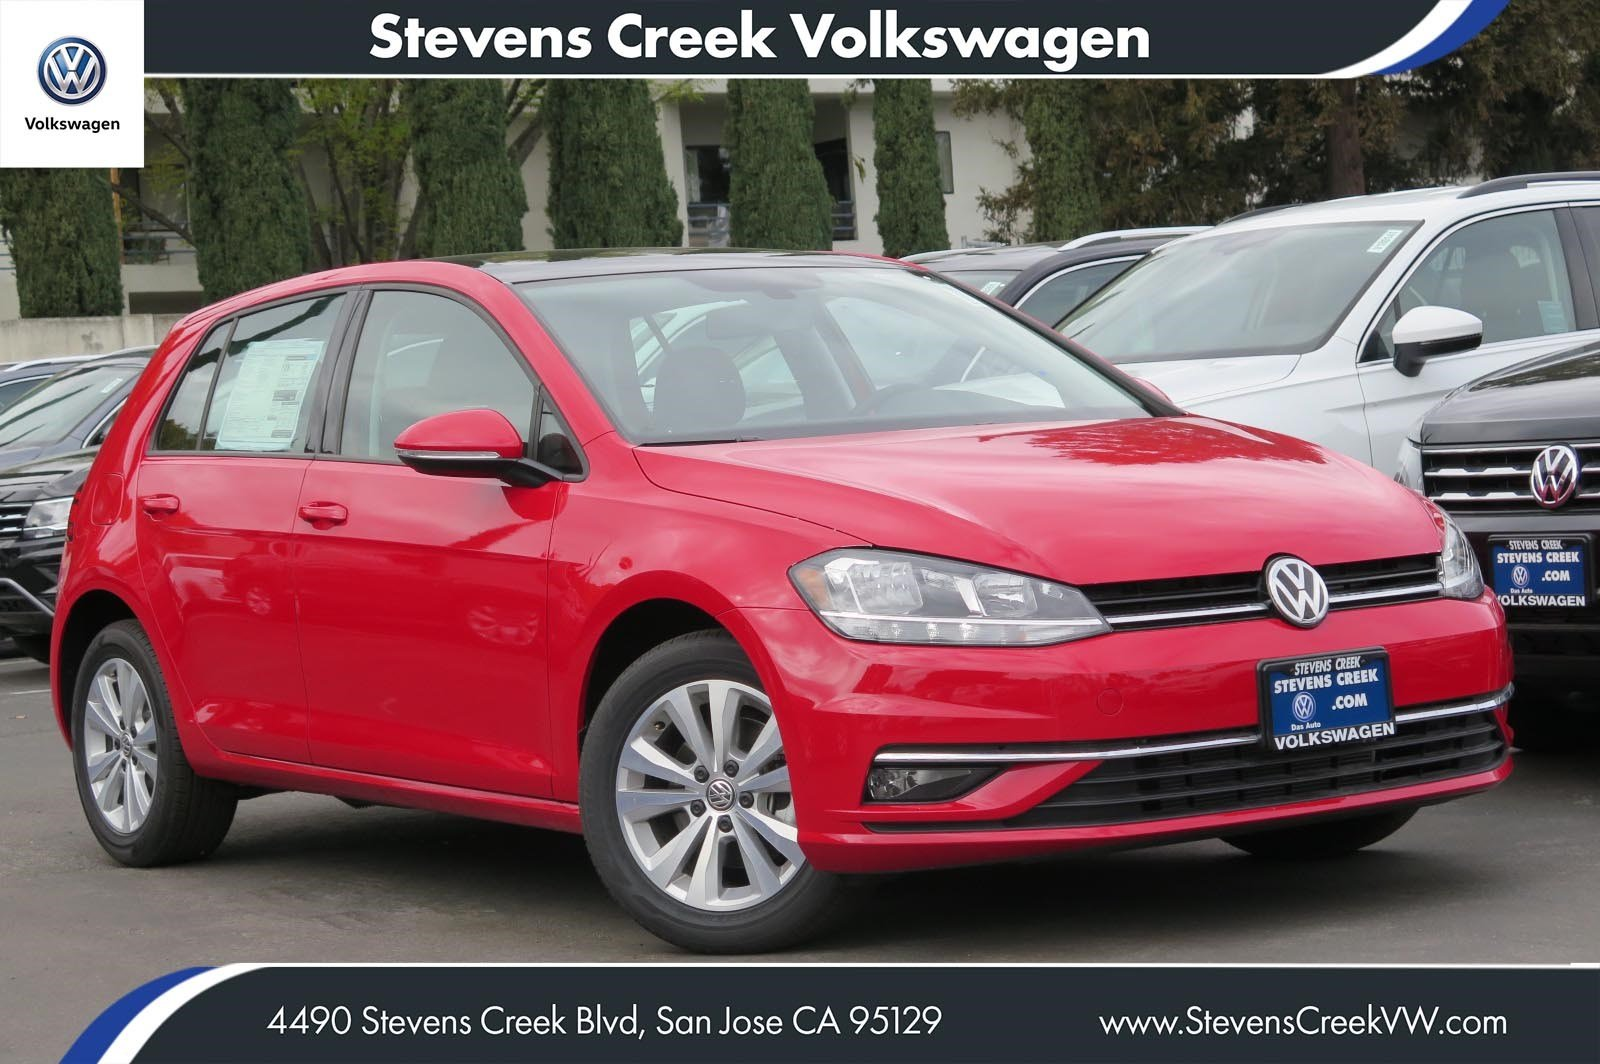 New 2018 Volkswagen Golf SE FWD Hatchback VIN# JM251405 MSRP $25,925